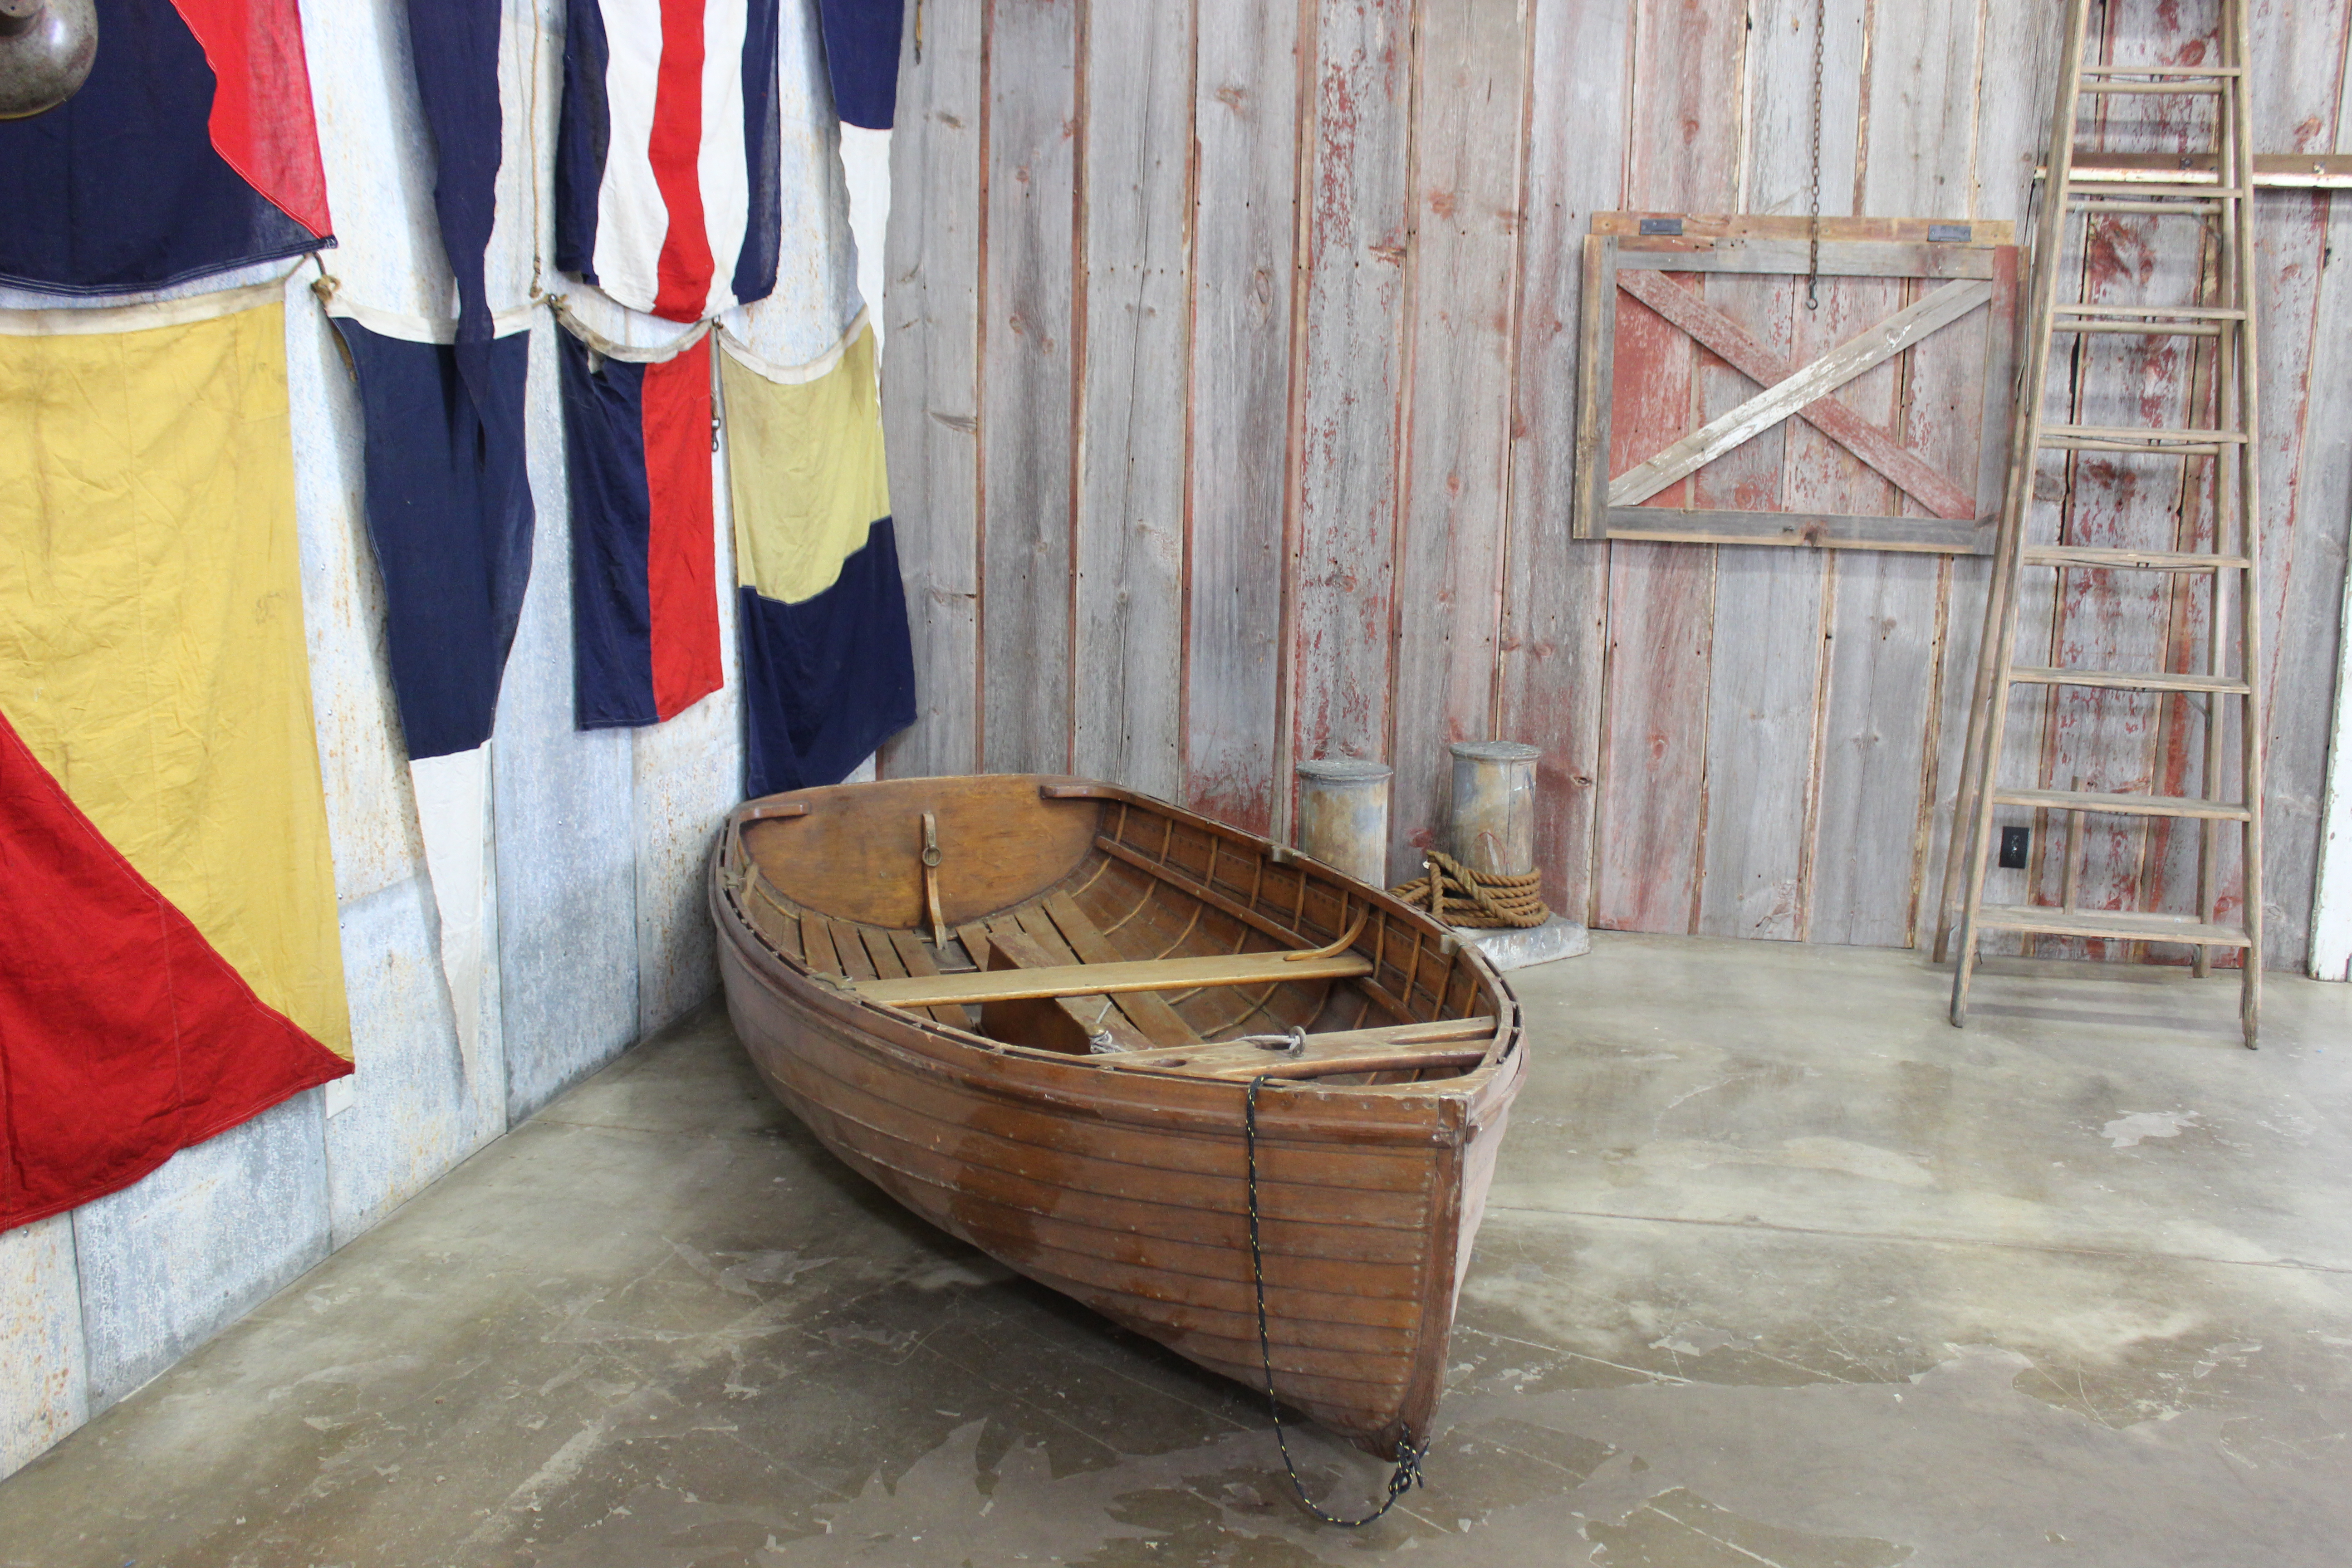 1914 Wood Sailboat The Crate People